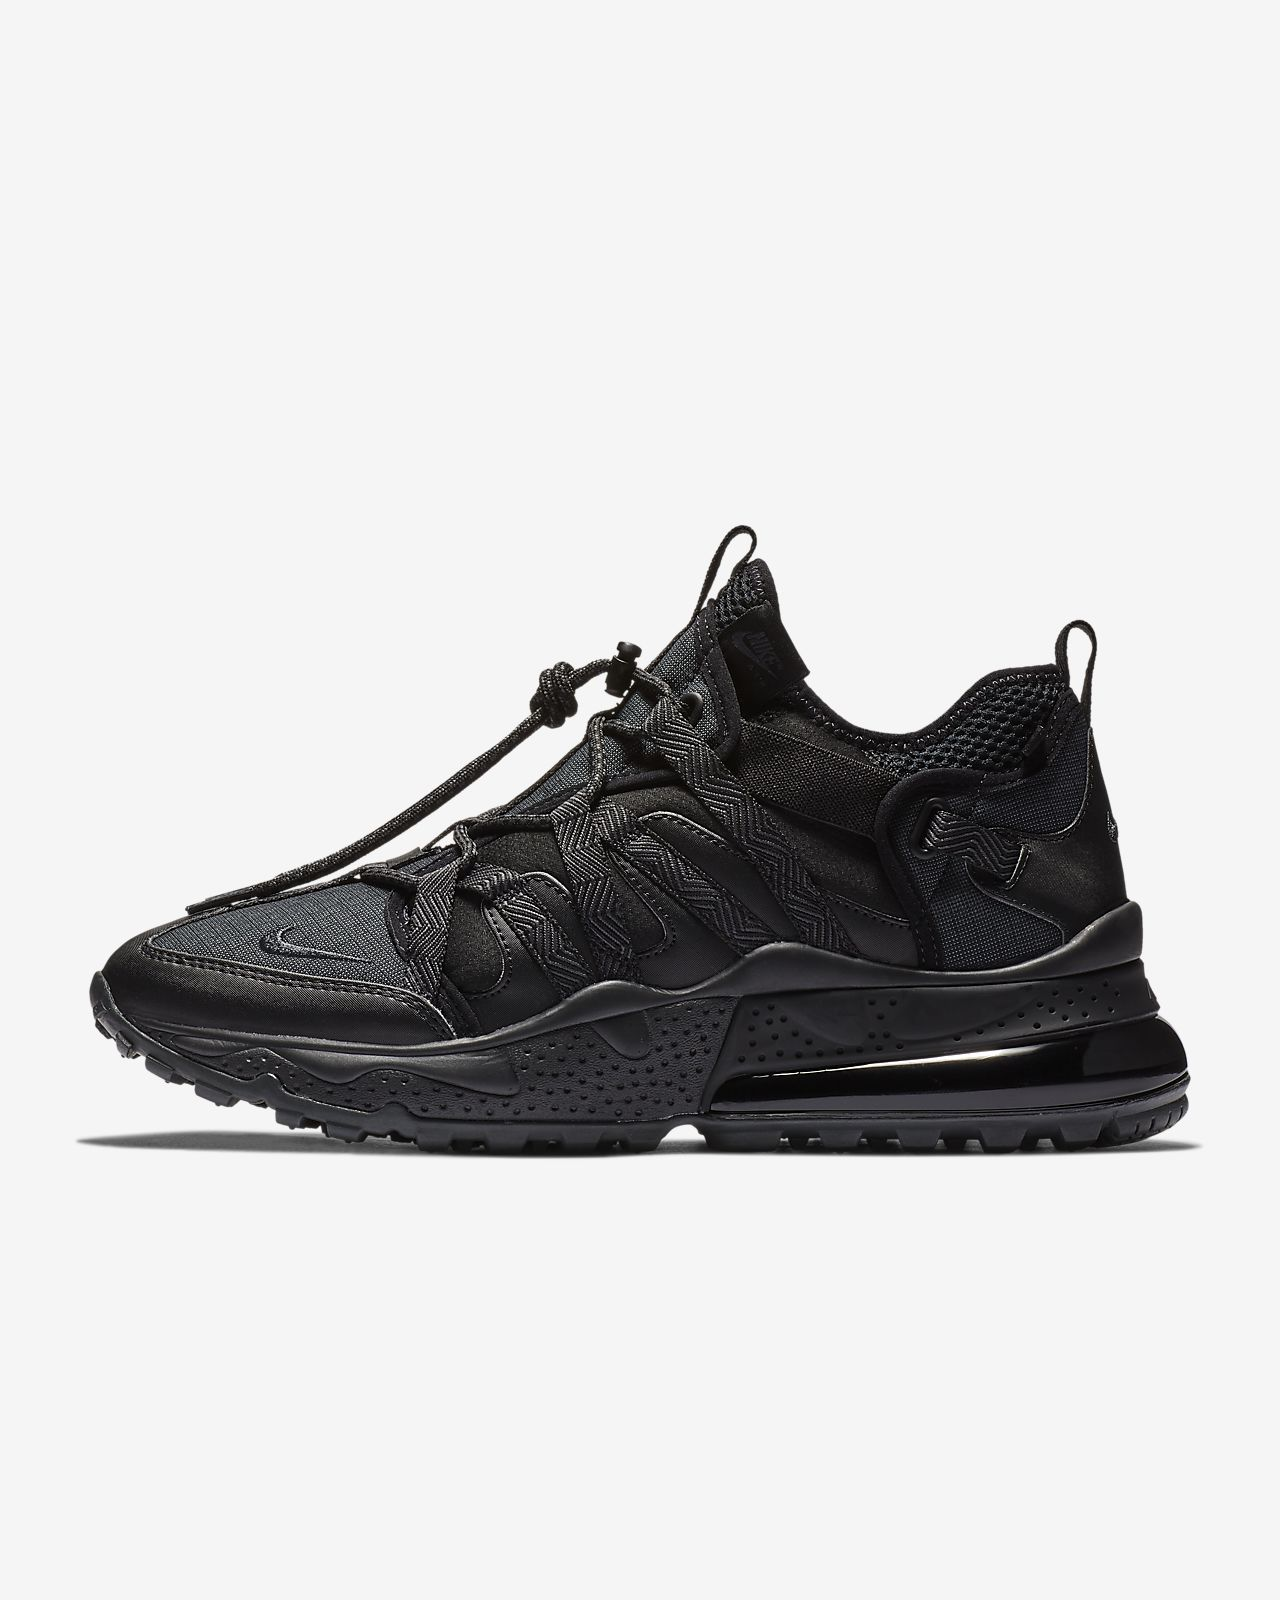 check out b8491 6e968 Nike Air Max 270 Bowfin Men's Shoe. Nike.com